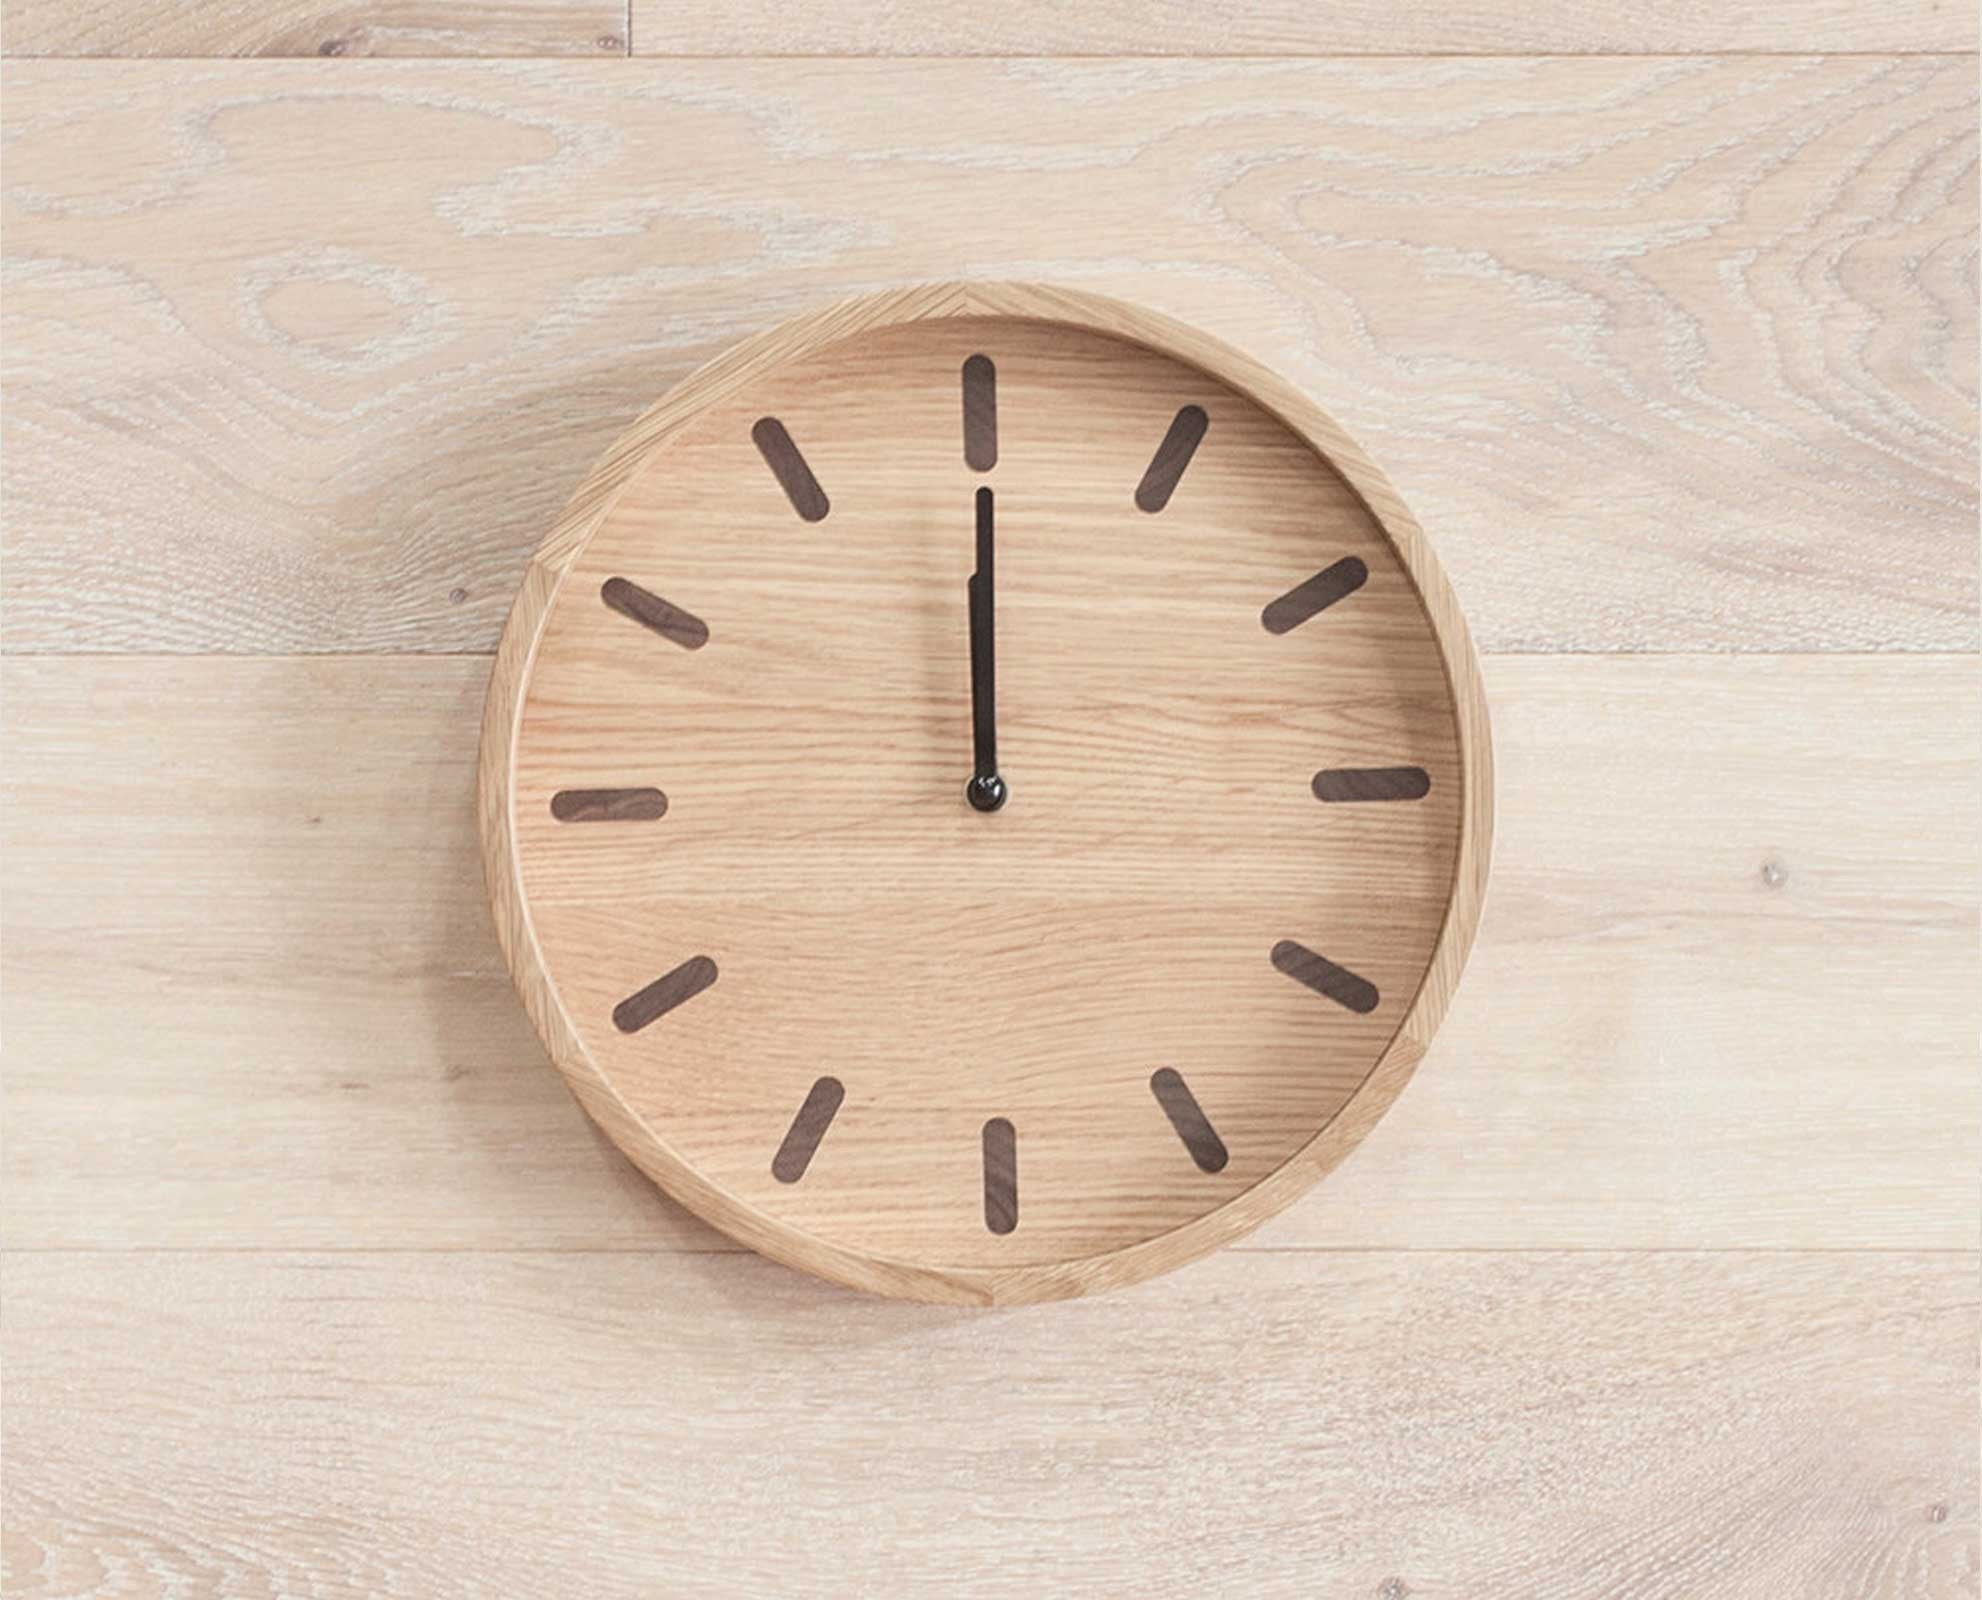 Natural wood notched clock